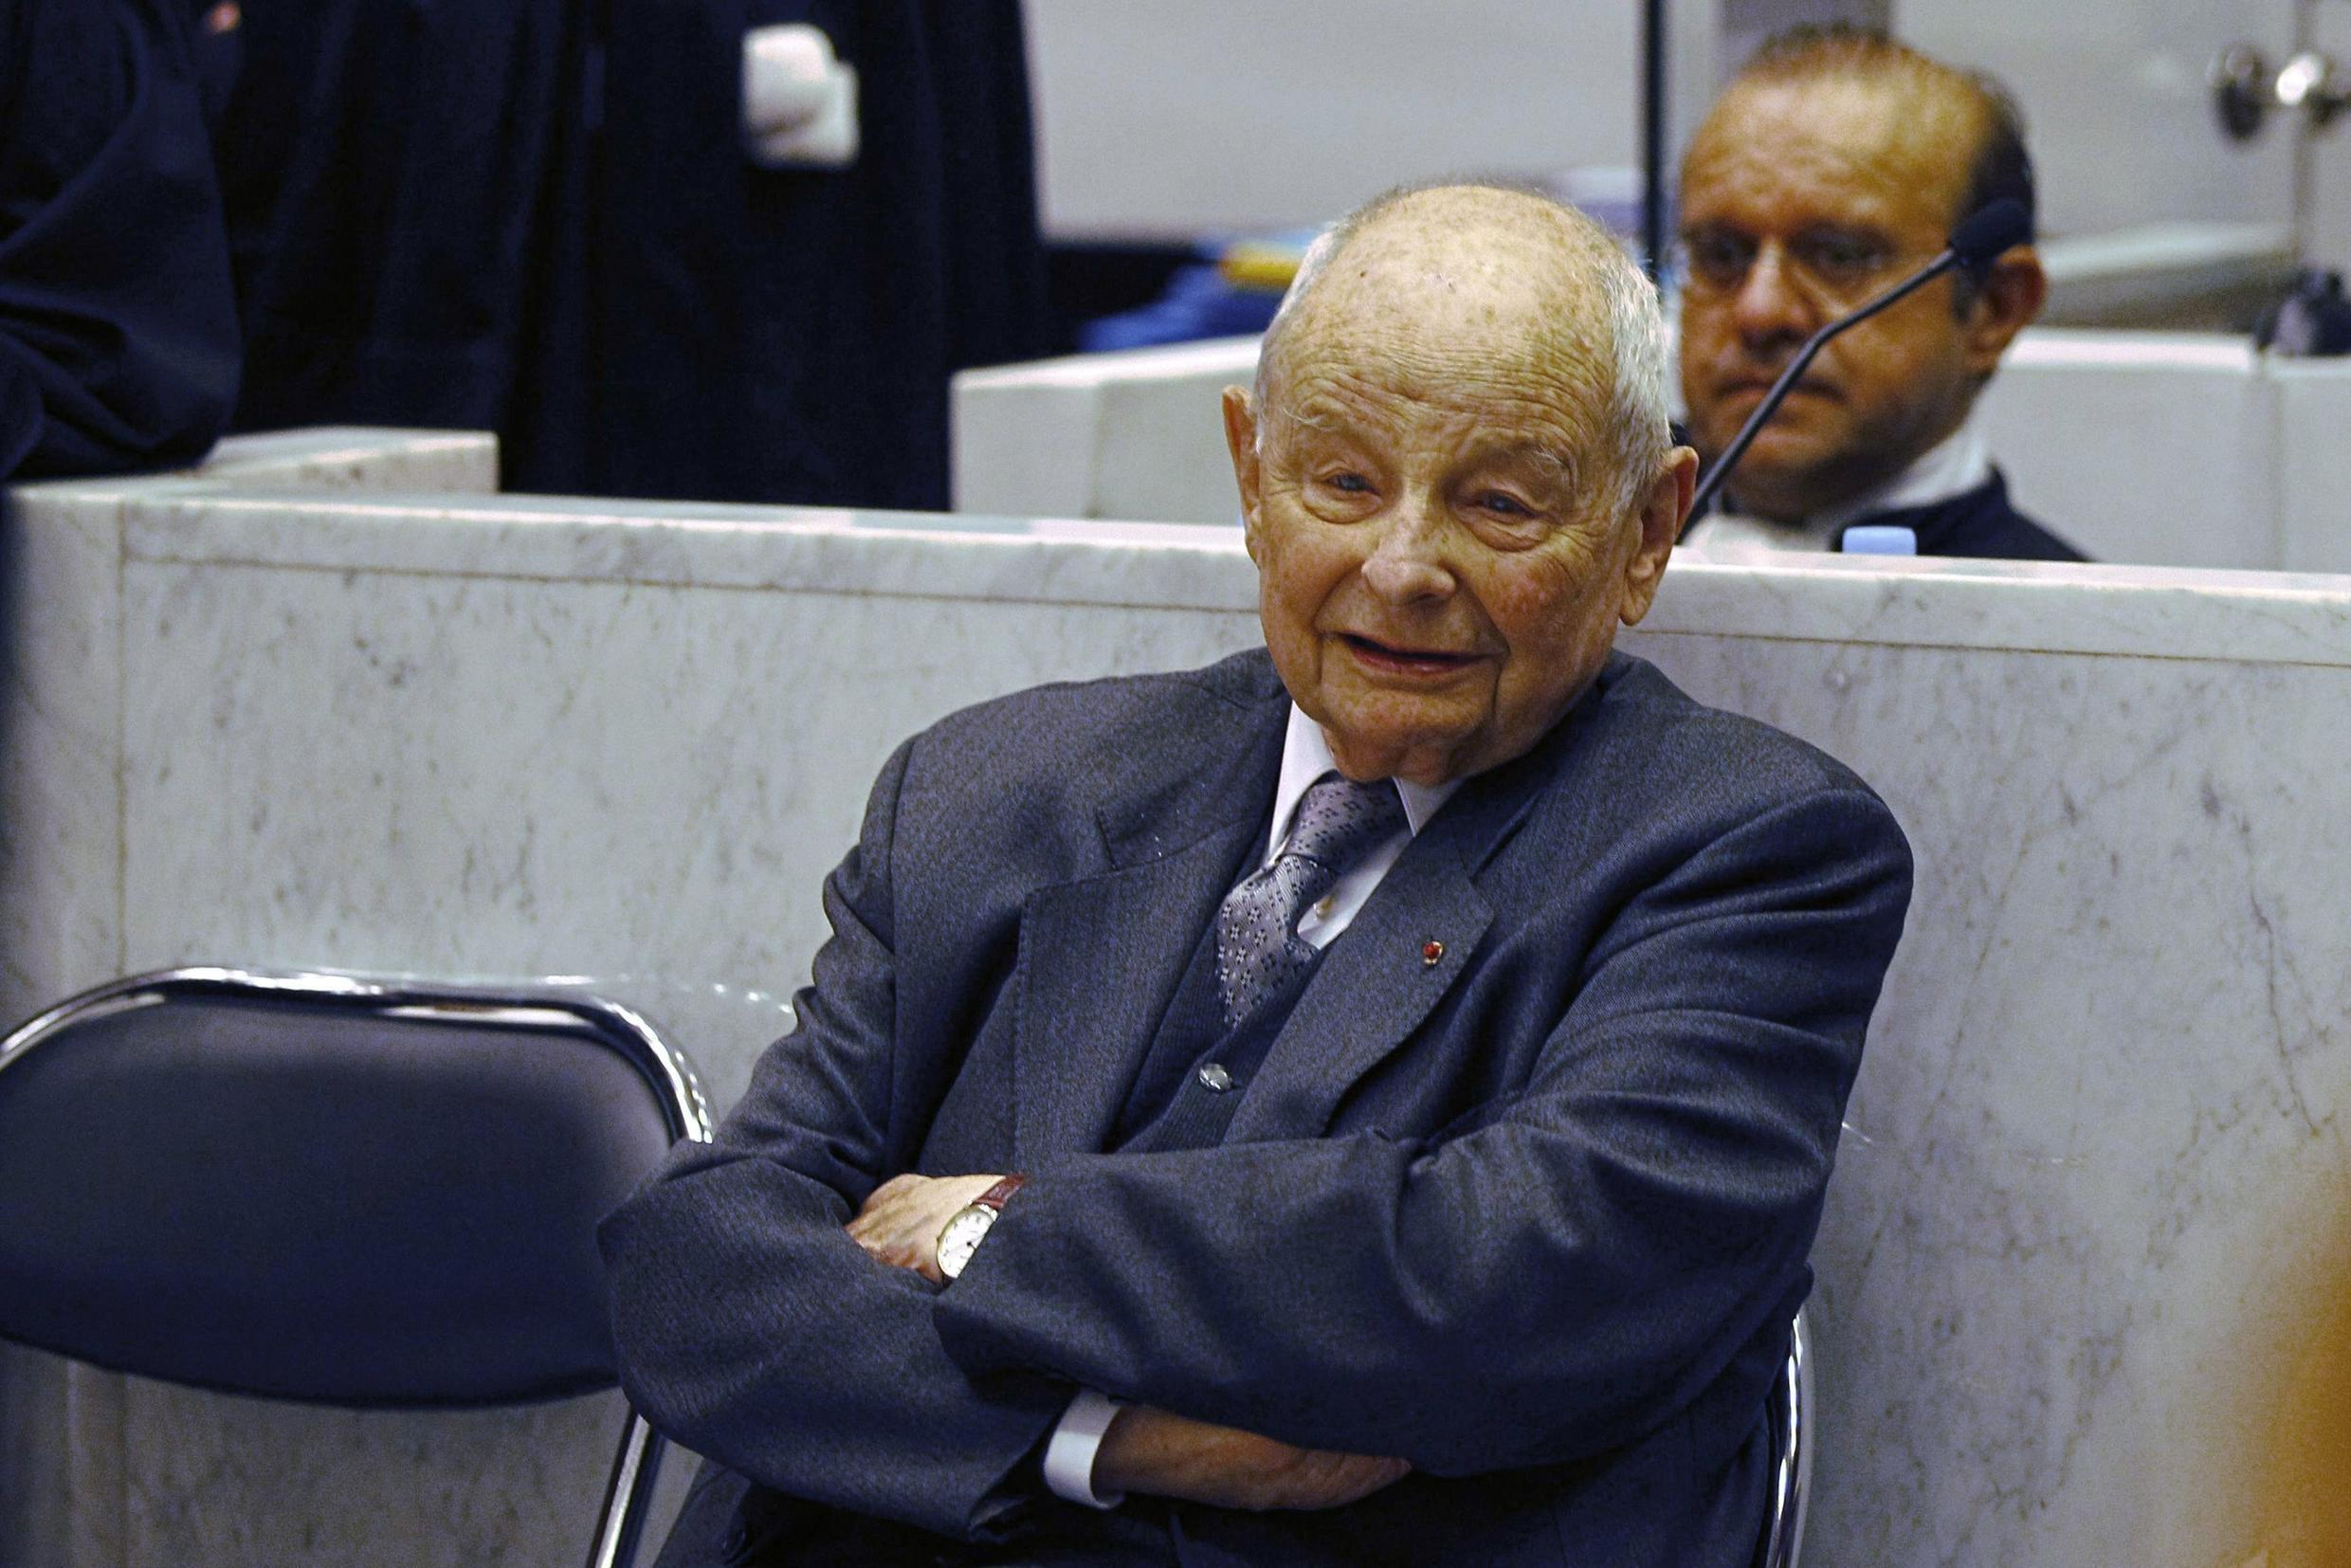 This photo taken on May 21, 2013 shows Jacques Servier, founder of the French pharmaceutical maker Les Laboratoires Servier, in the Nanterre courthouse, outside Paris, on the opening day of the Mediator trial.